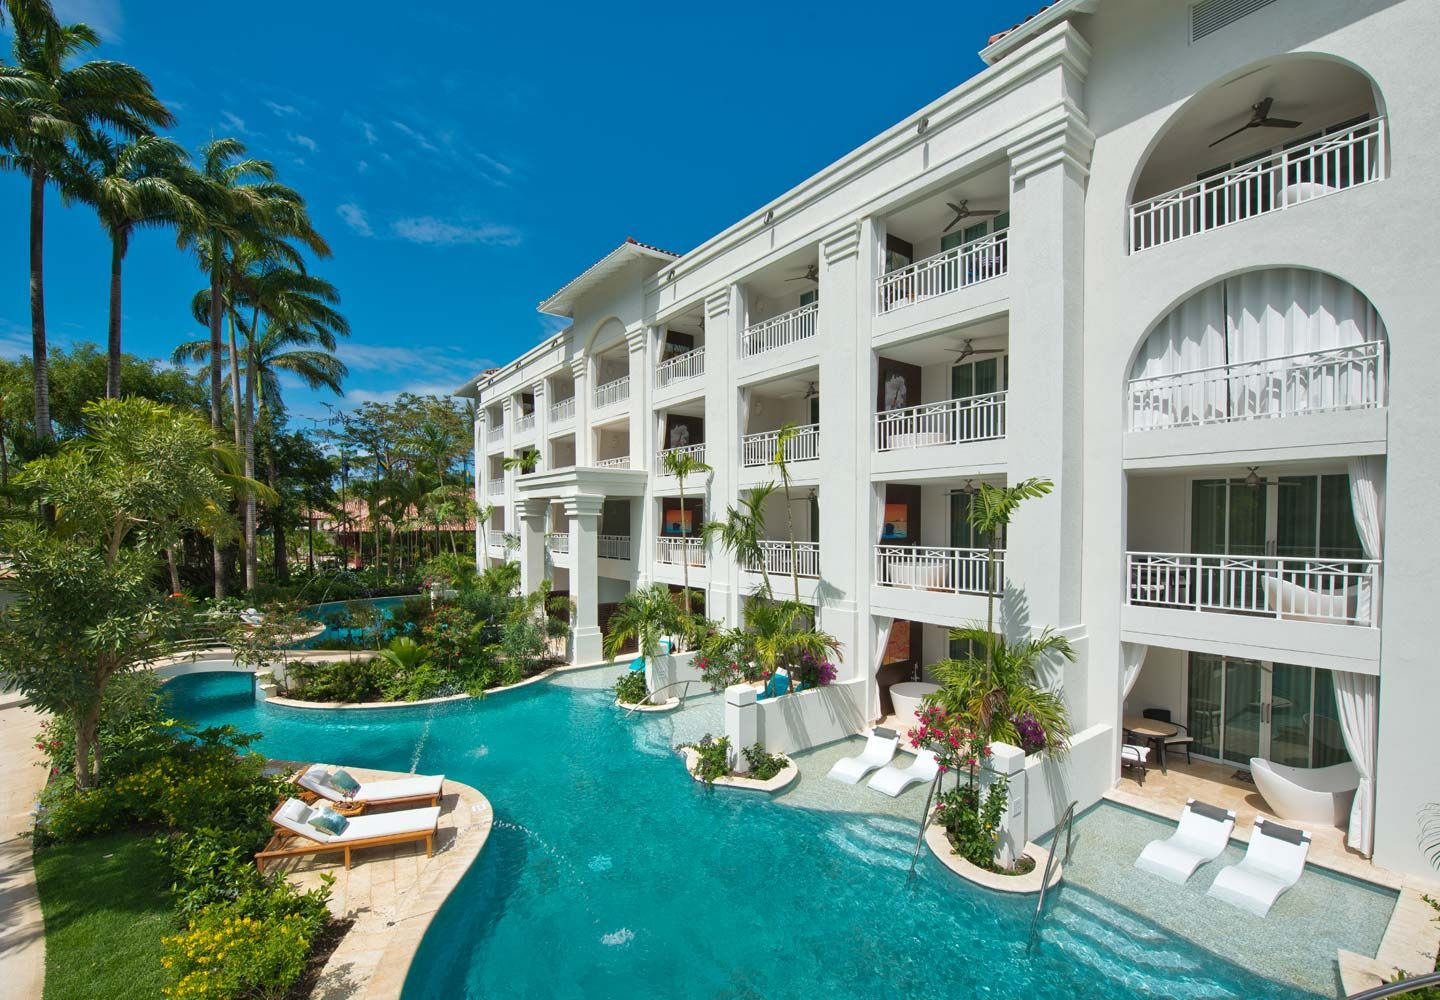 Sandals Barbados Honeymoon Vacation And Wedding Packages Made Easy Only Couples All Inclusive Resort Is Opening January